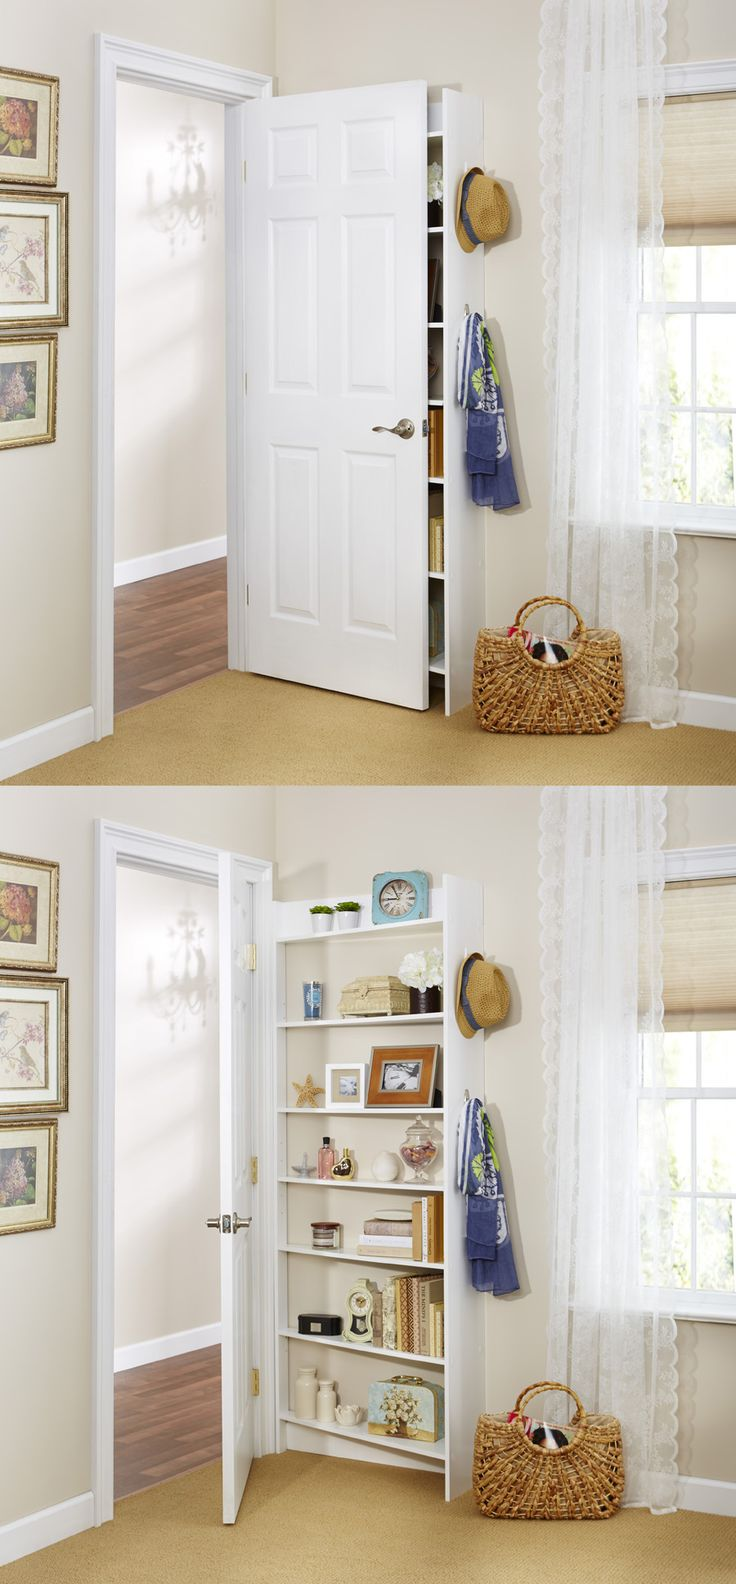 Small spaces  Hide Behind the Door Shelving System by Foremost , because  it's possible to fit extra storage